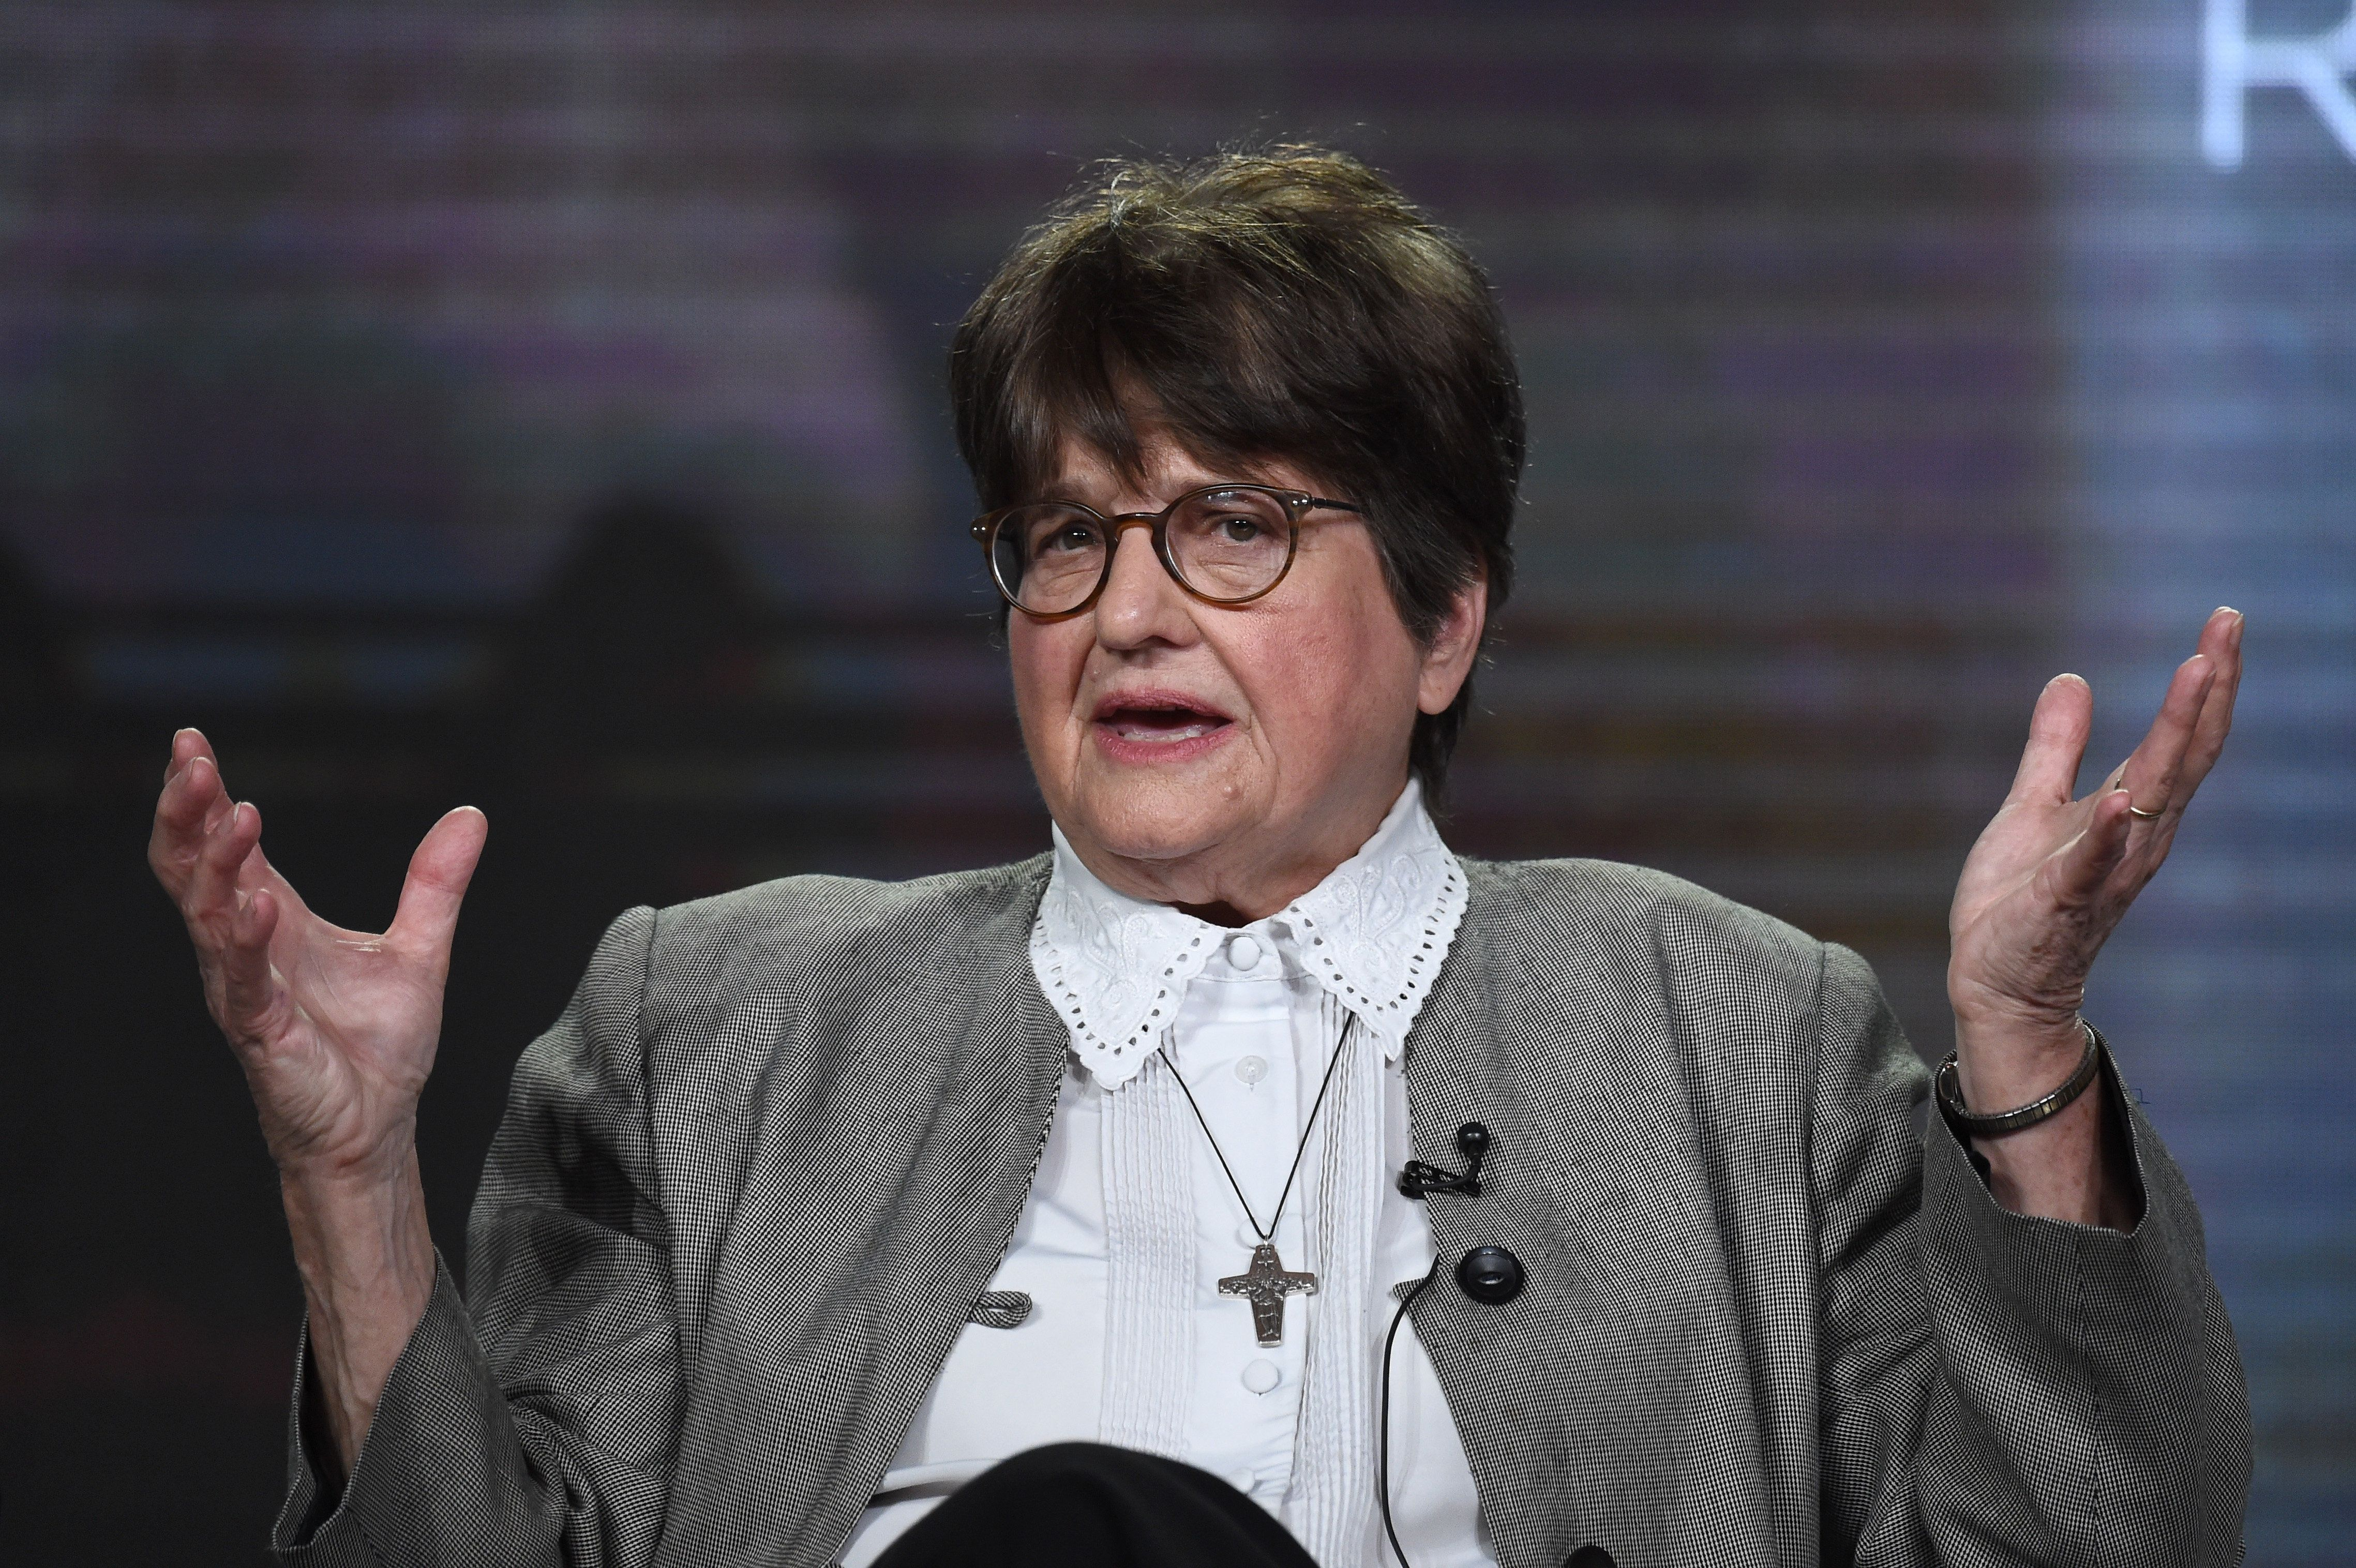 """PASADENA, CA - JANUARY 14:  Sister Helen Prejean, activist and author of """"Dead Man Walking"""" speaks onstage during the 'Killing Richard Glossip' panel at during Discovery Communications Winter TCA Event on January 14, 2017 in Pasadena, California.  (Photo by Amanda Edwards/Getty Images for Discovery Communications )"""